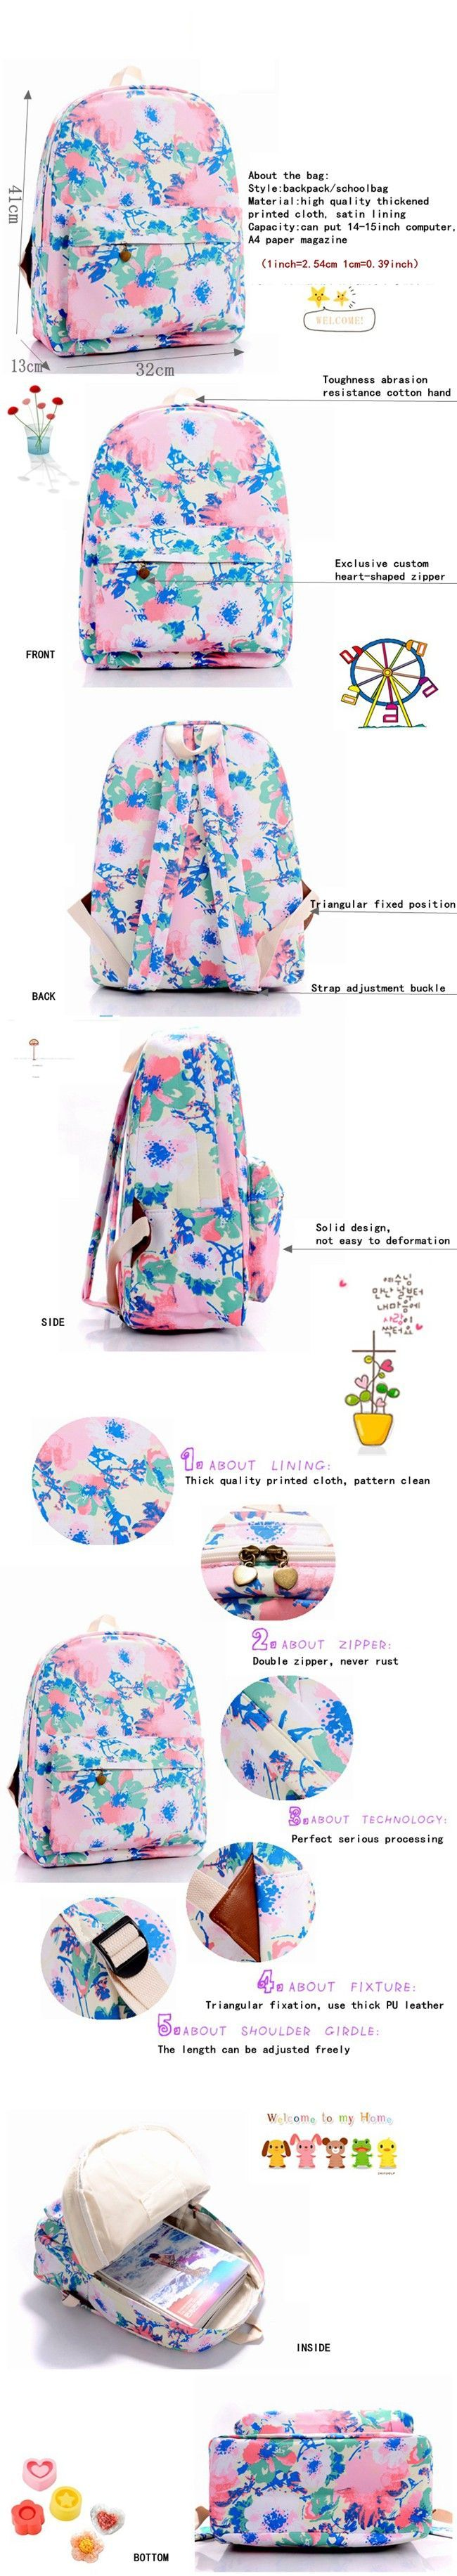 Korean Harajuku Pink Floral Printing Backpack Fashion Campus School Bag For Teens mochilas escolares femininas  http://playertronics.com/products/korean-harajuku-pink-floral-printing-backpack-fashion-campus-school-bag-for-teens-mochilas-escolares-femininas/ - store bags, bags with price, ladies shoulder bags online shopping *ad